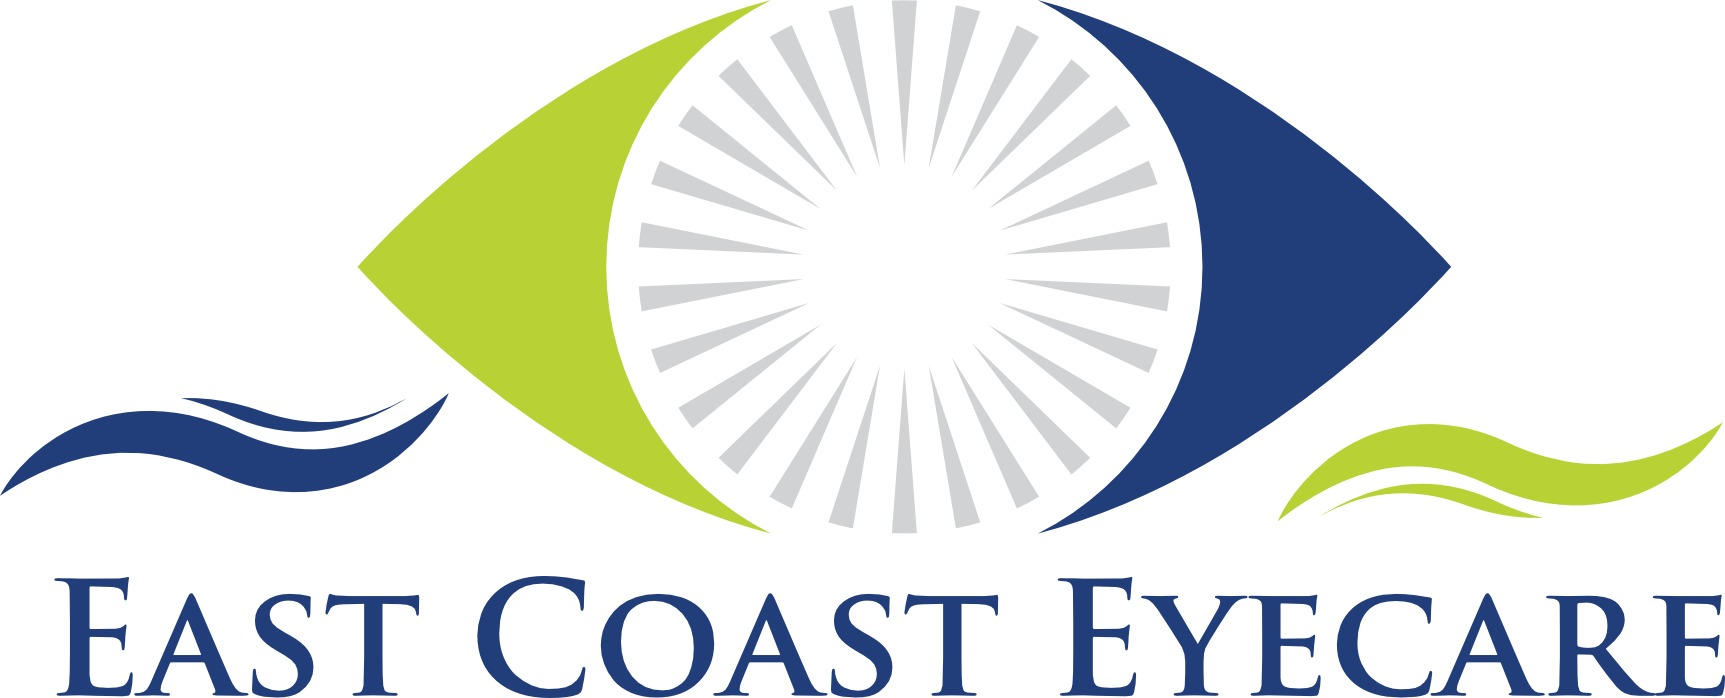 East Coast Eyecare